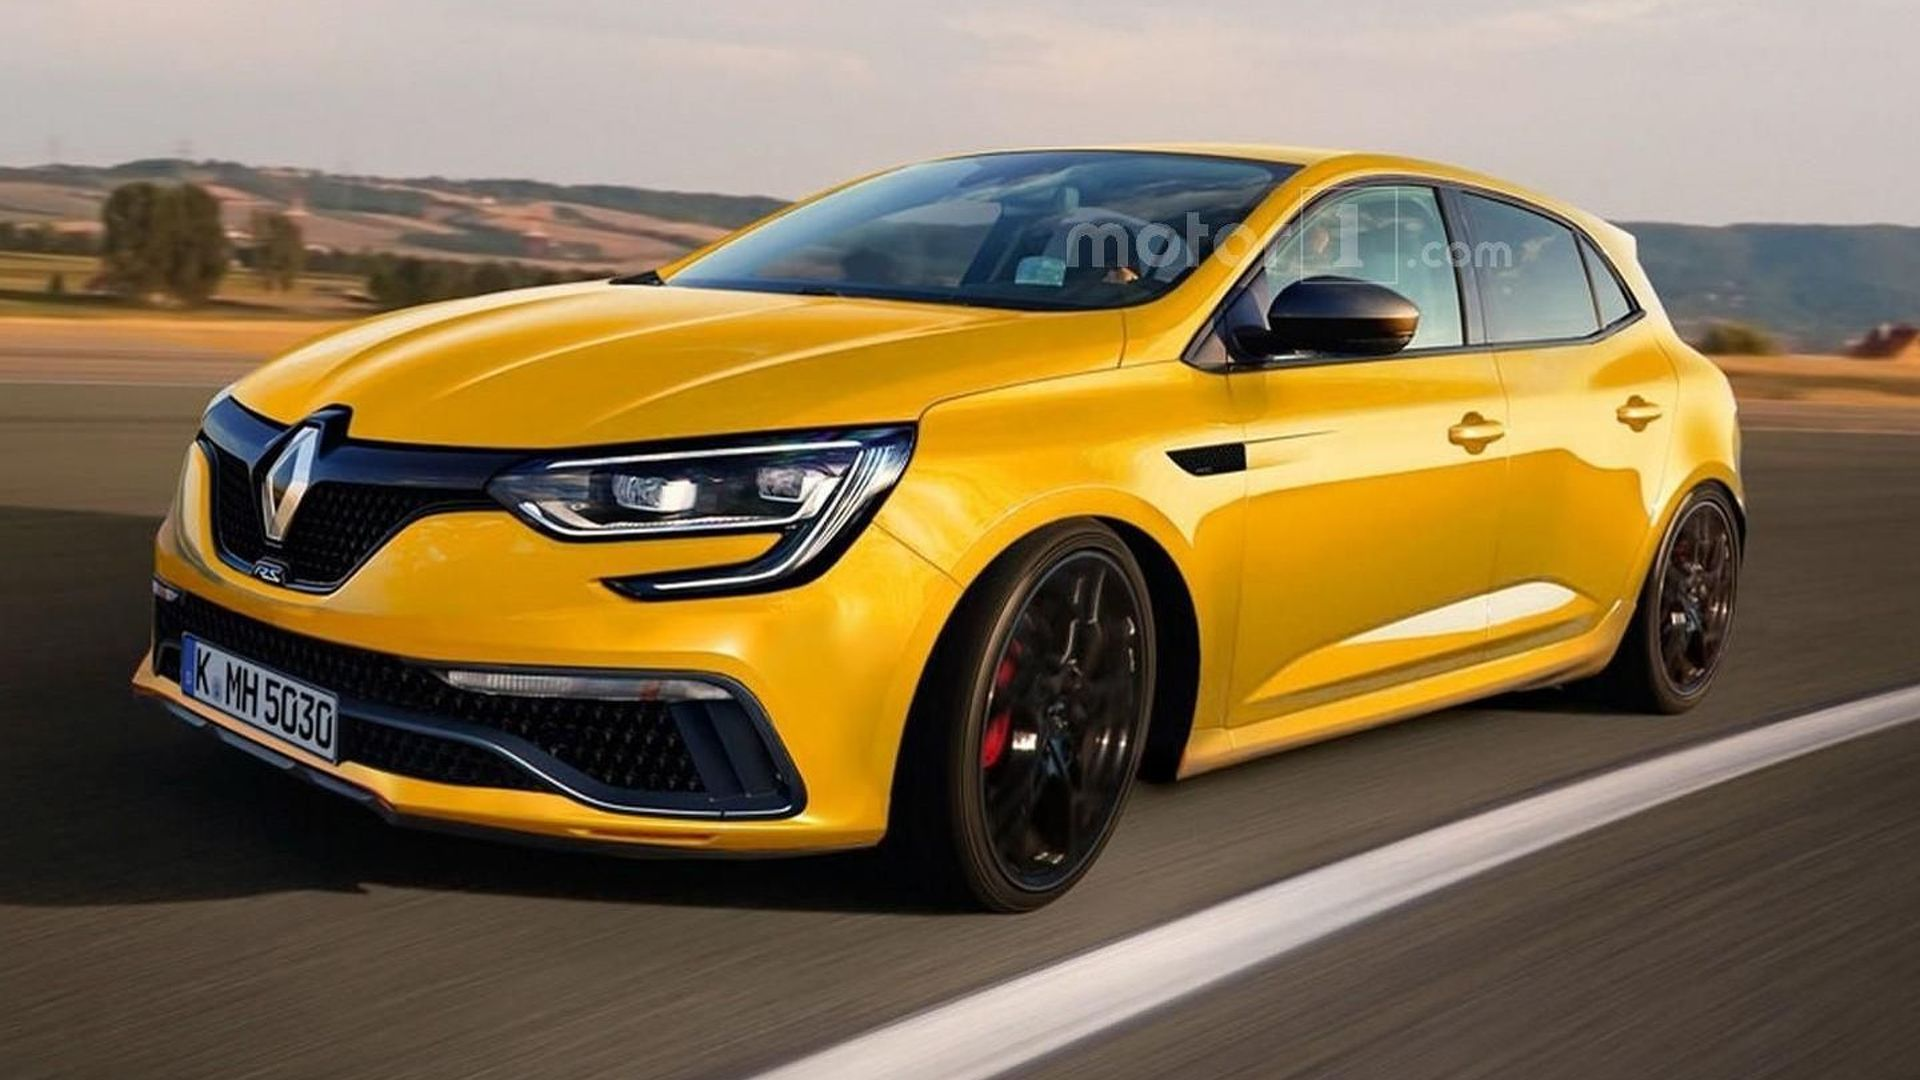 2018 renault megane rs to have 300 hp awd Interieur clio 4